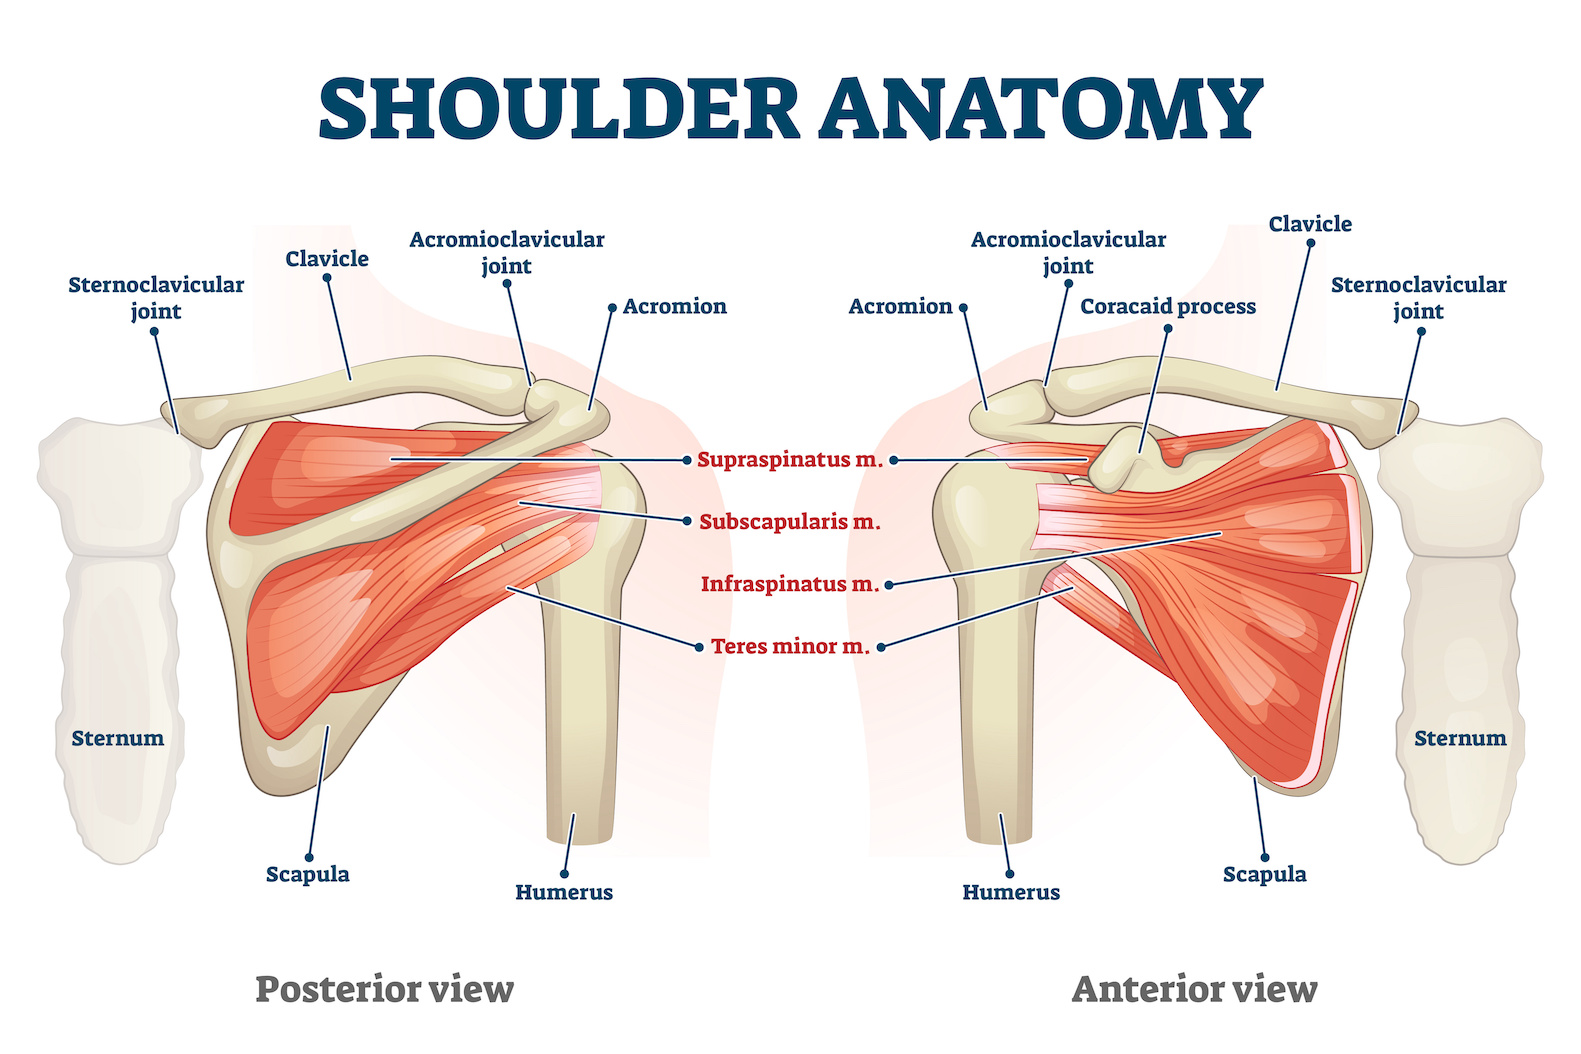 Picture of shoulder anatomy